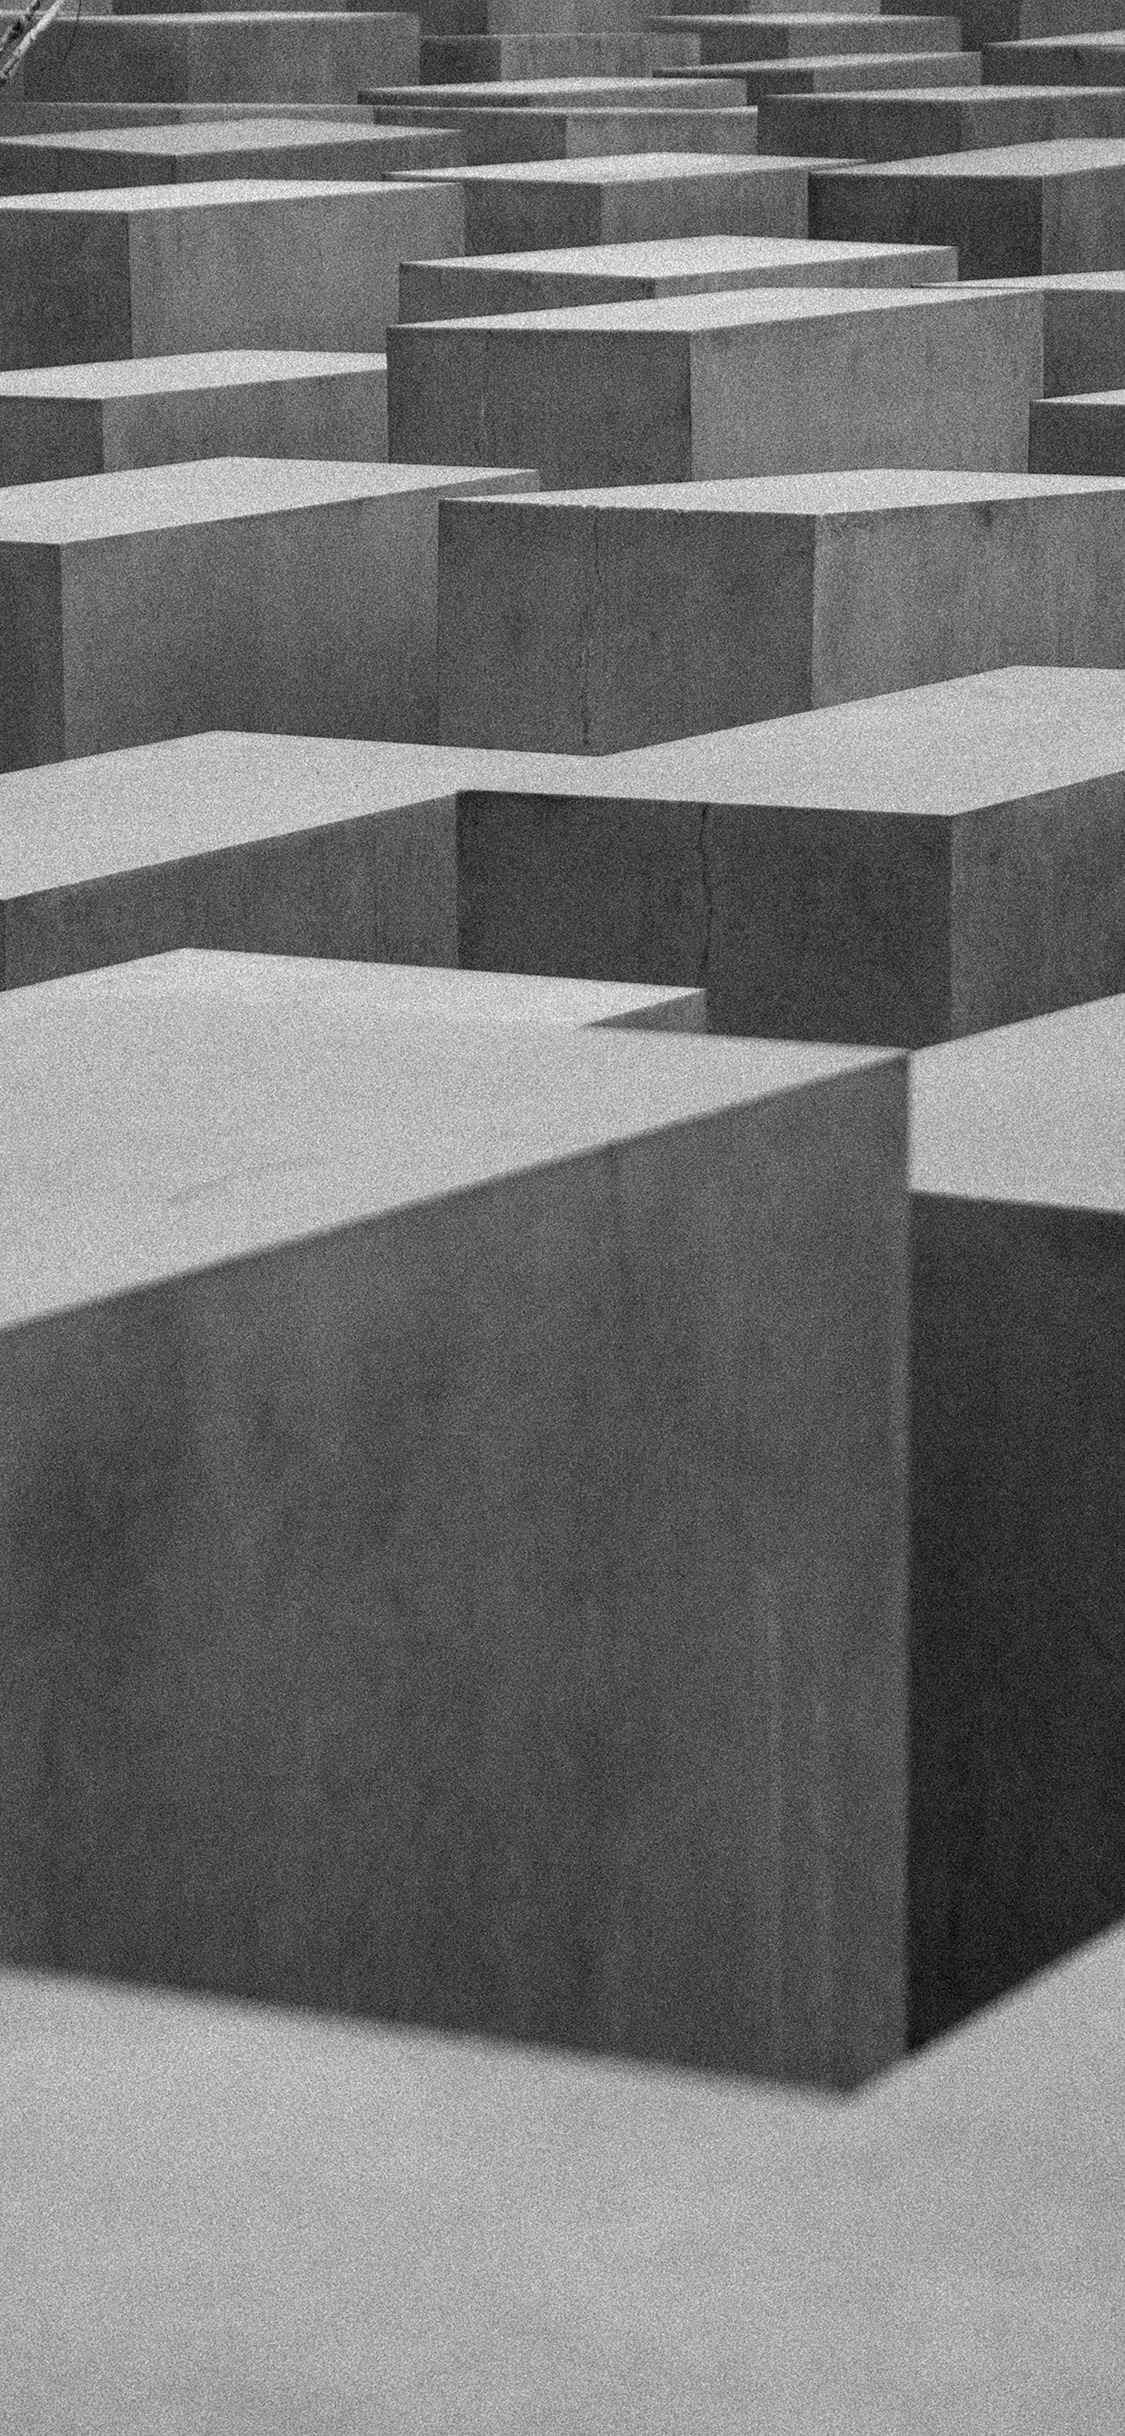 iPhoneXpapers.com-Apple-iPhone-wallpaper-vj58-black-white-bw-berlin-city-pattern